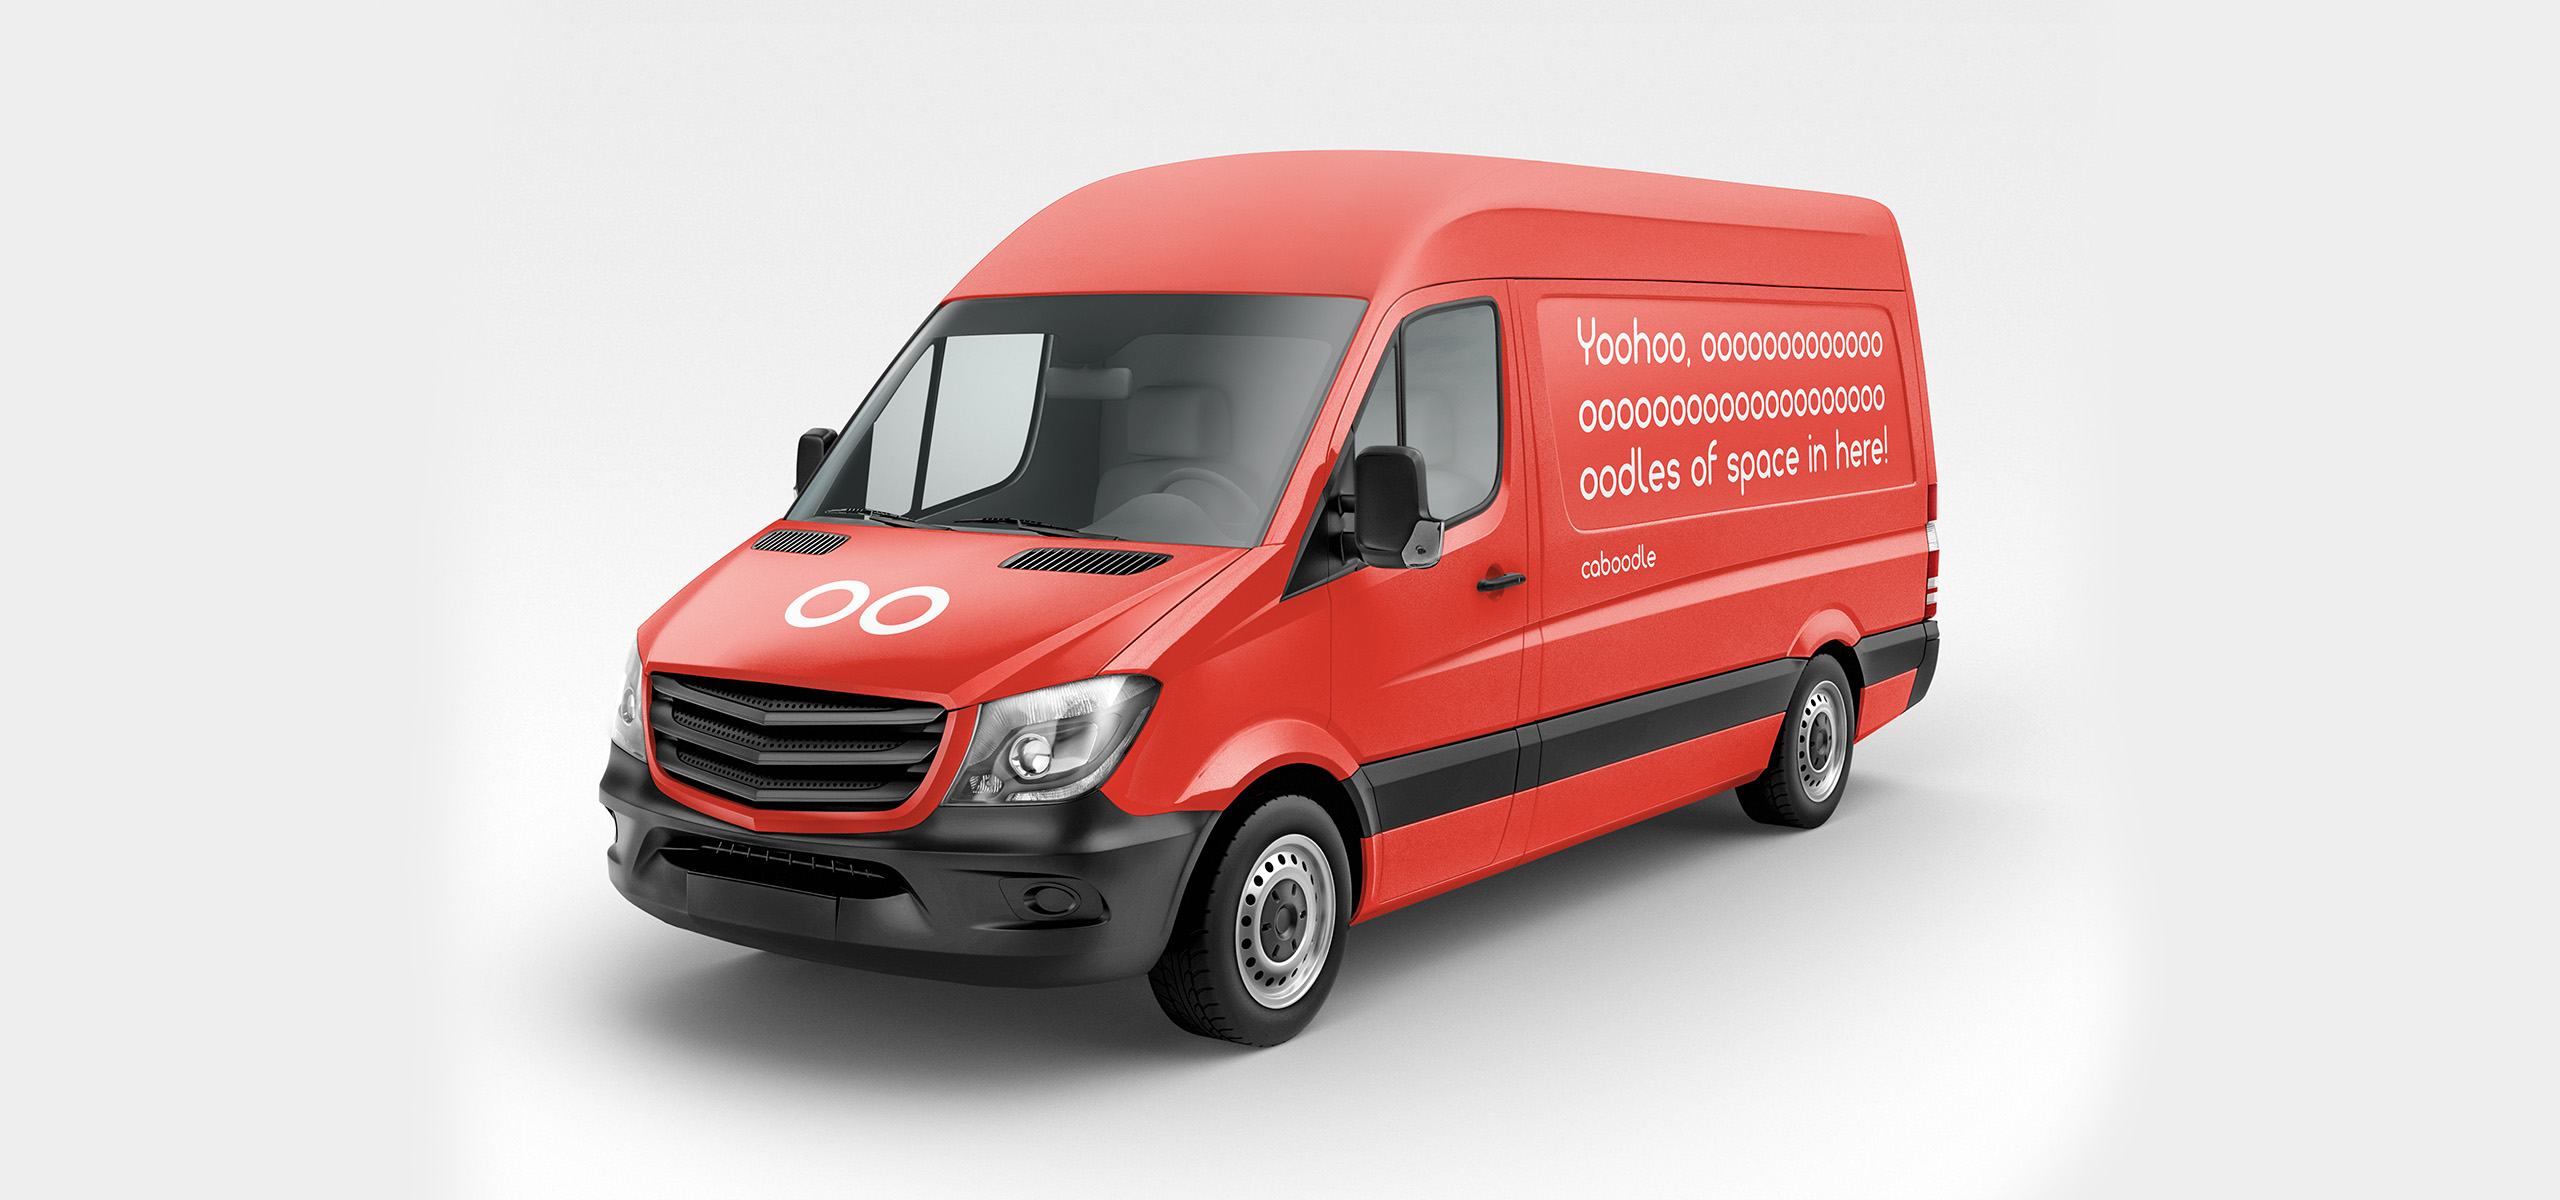 Delivery van design for new startup brand Caboodle, designed by White Bear Studio